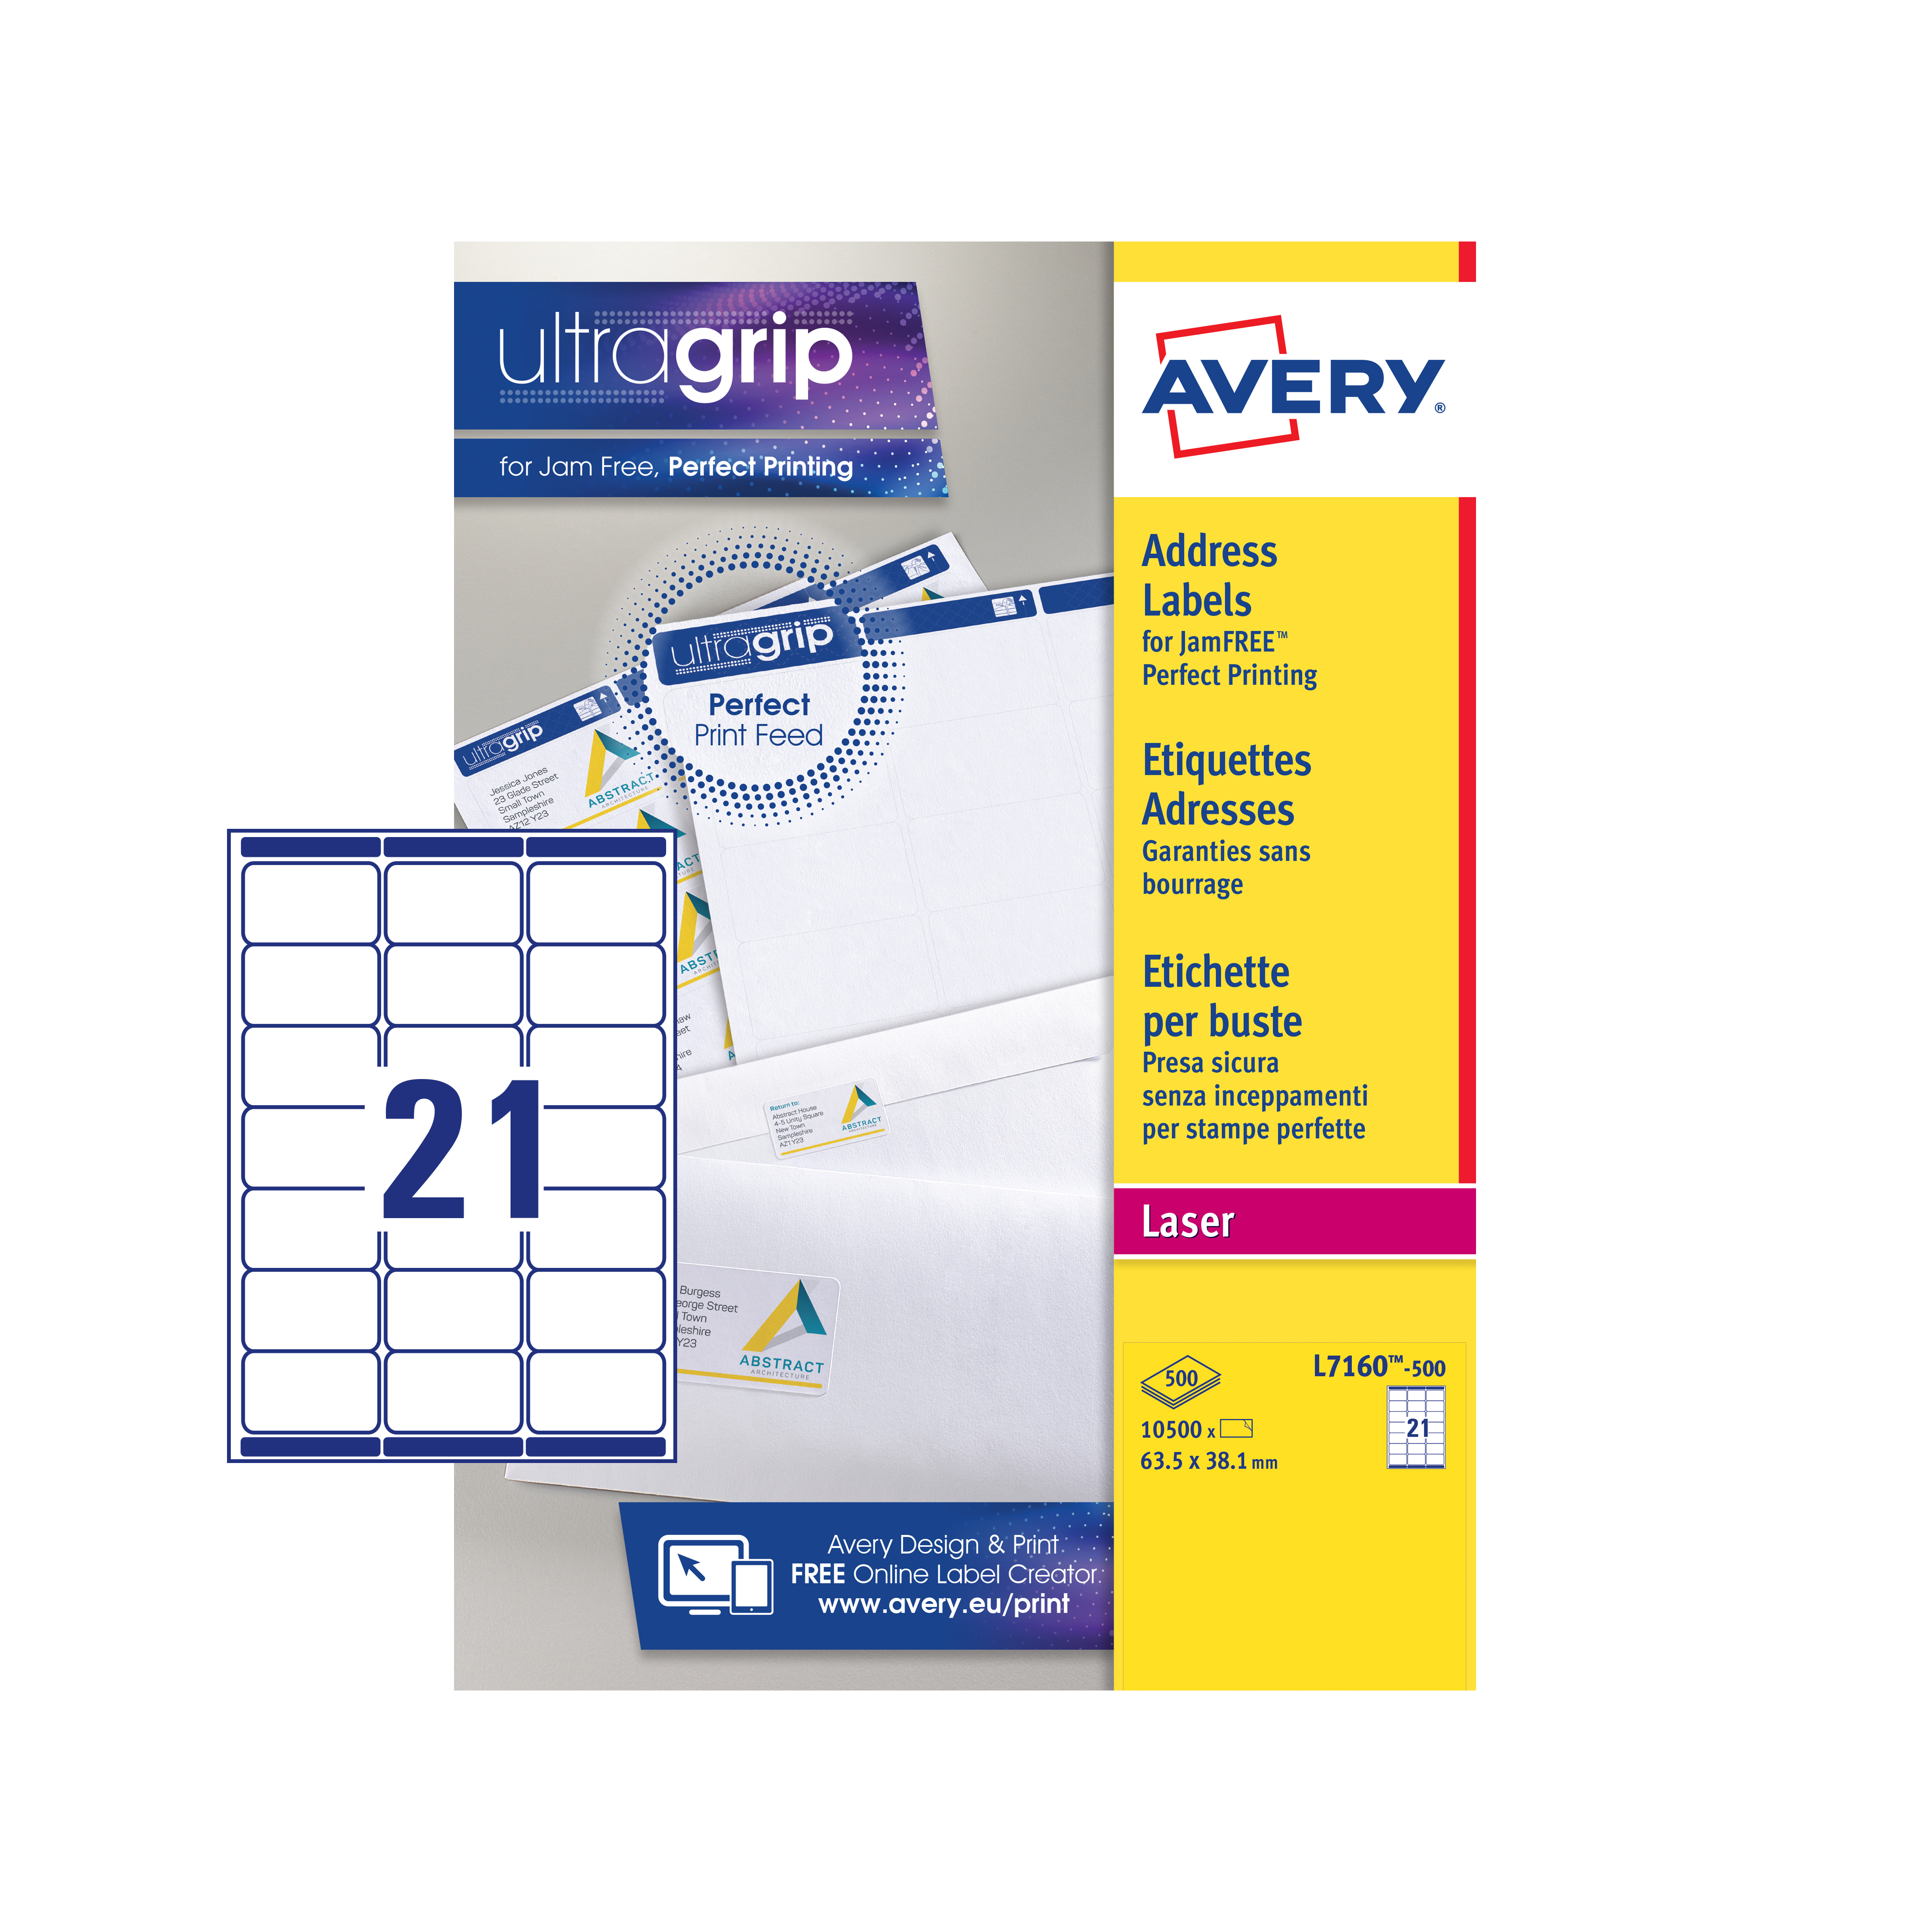 Avery Addressing Labels Laser Jam-free 21 per Sheet 63.5x38.1mm White Ref L7160-500 10500 Labels